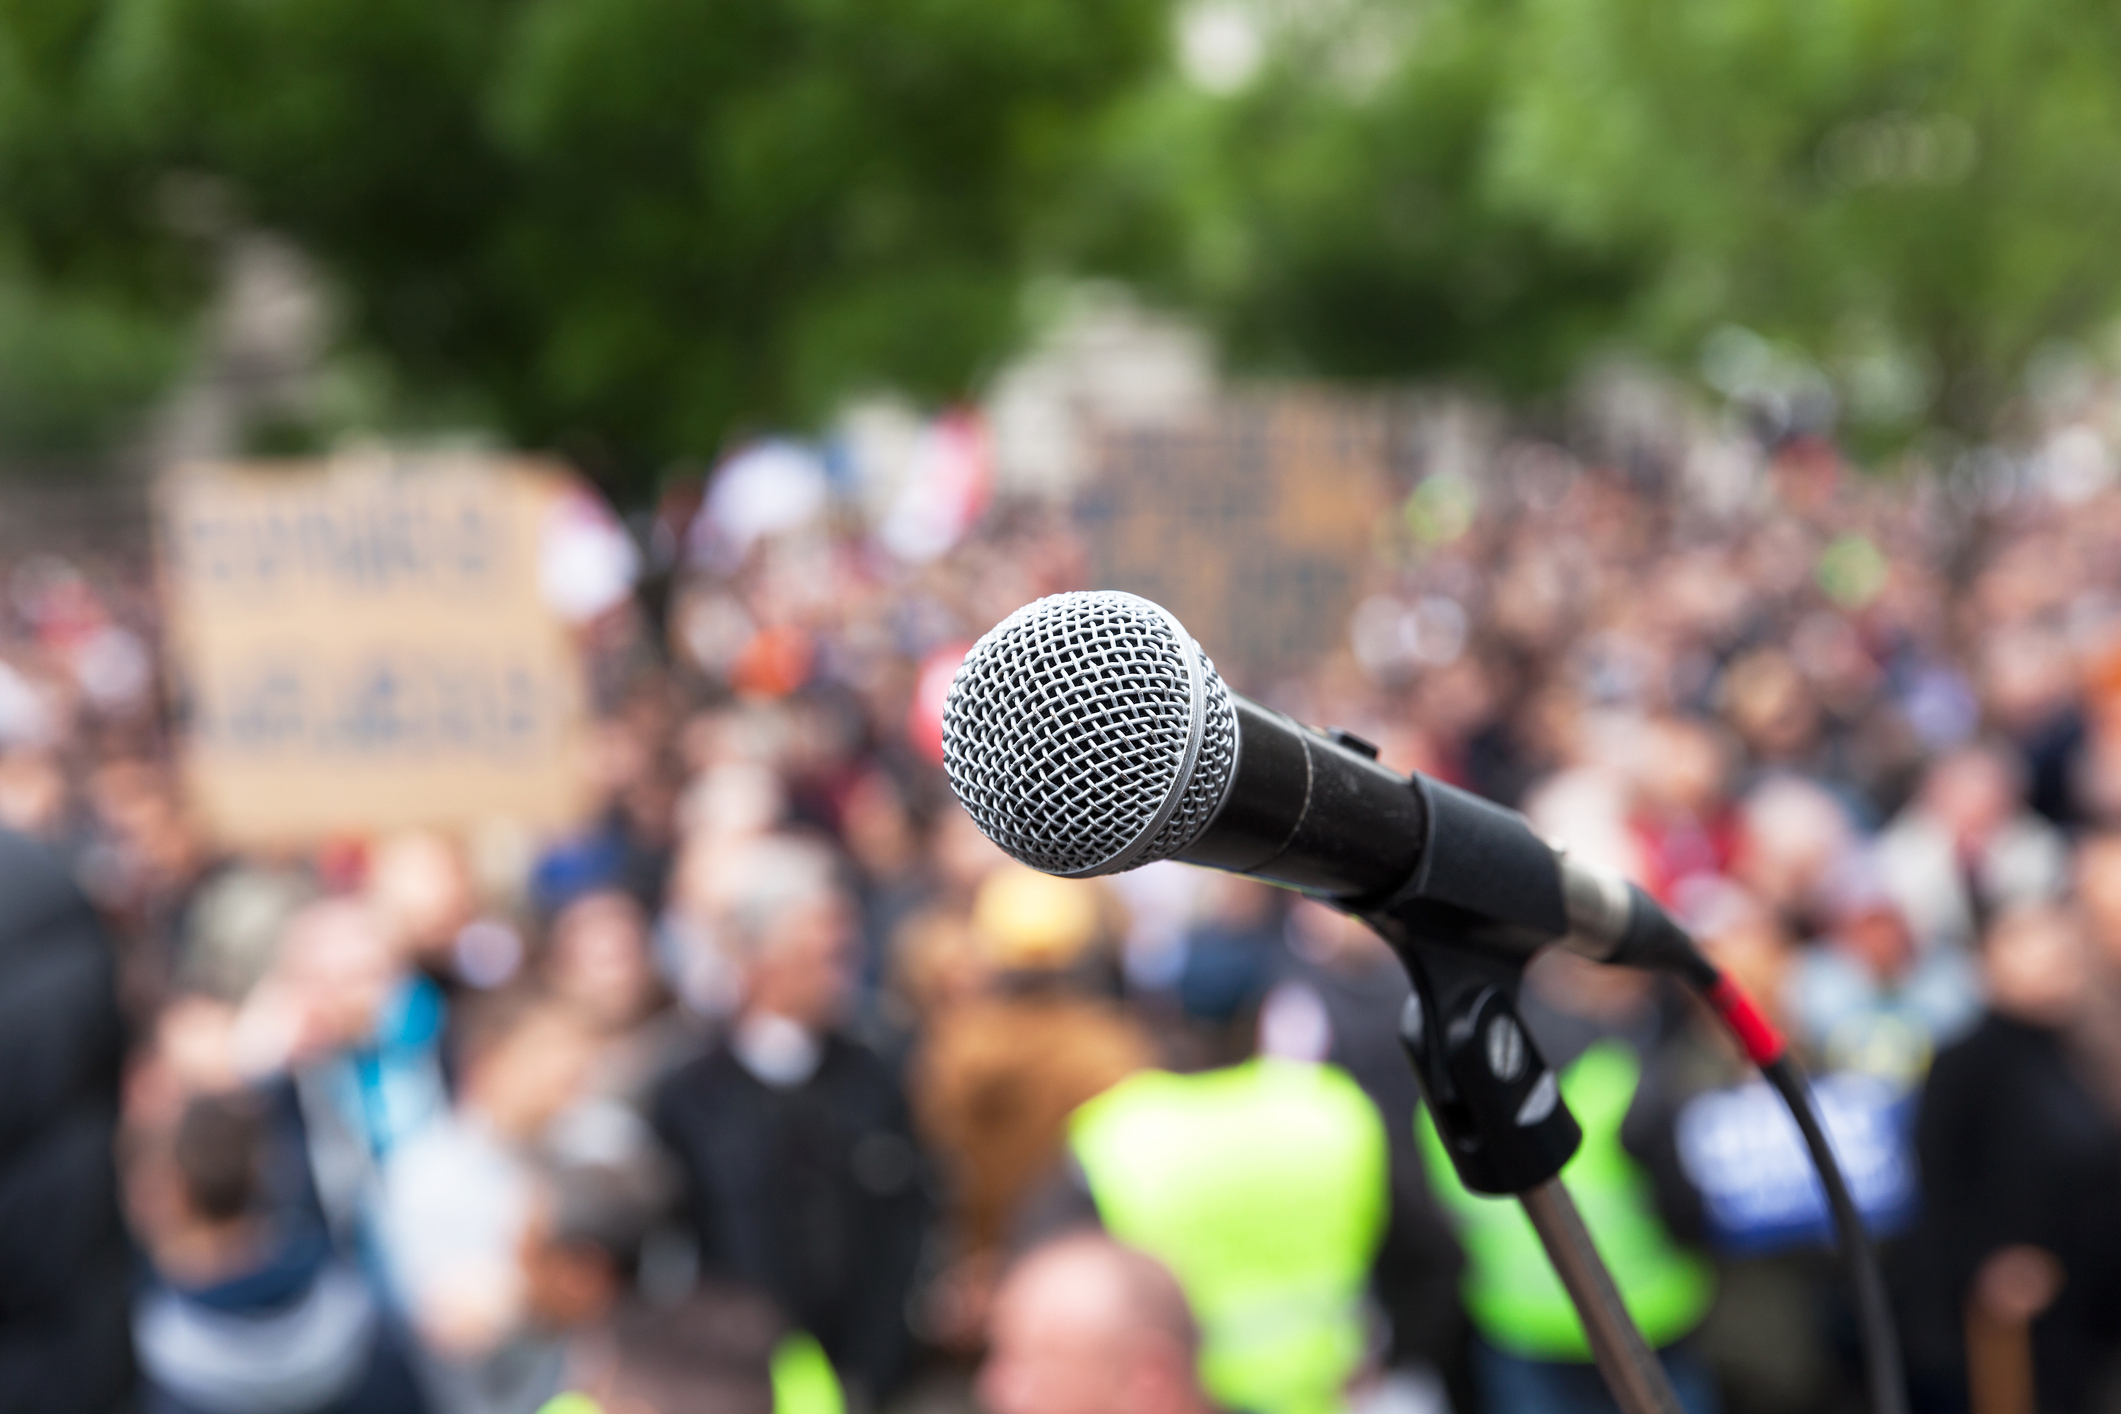 Learn more about the First Amendment and controversial speakers on college campuses